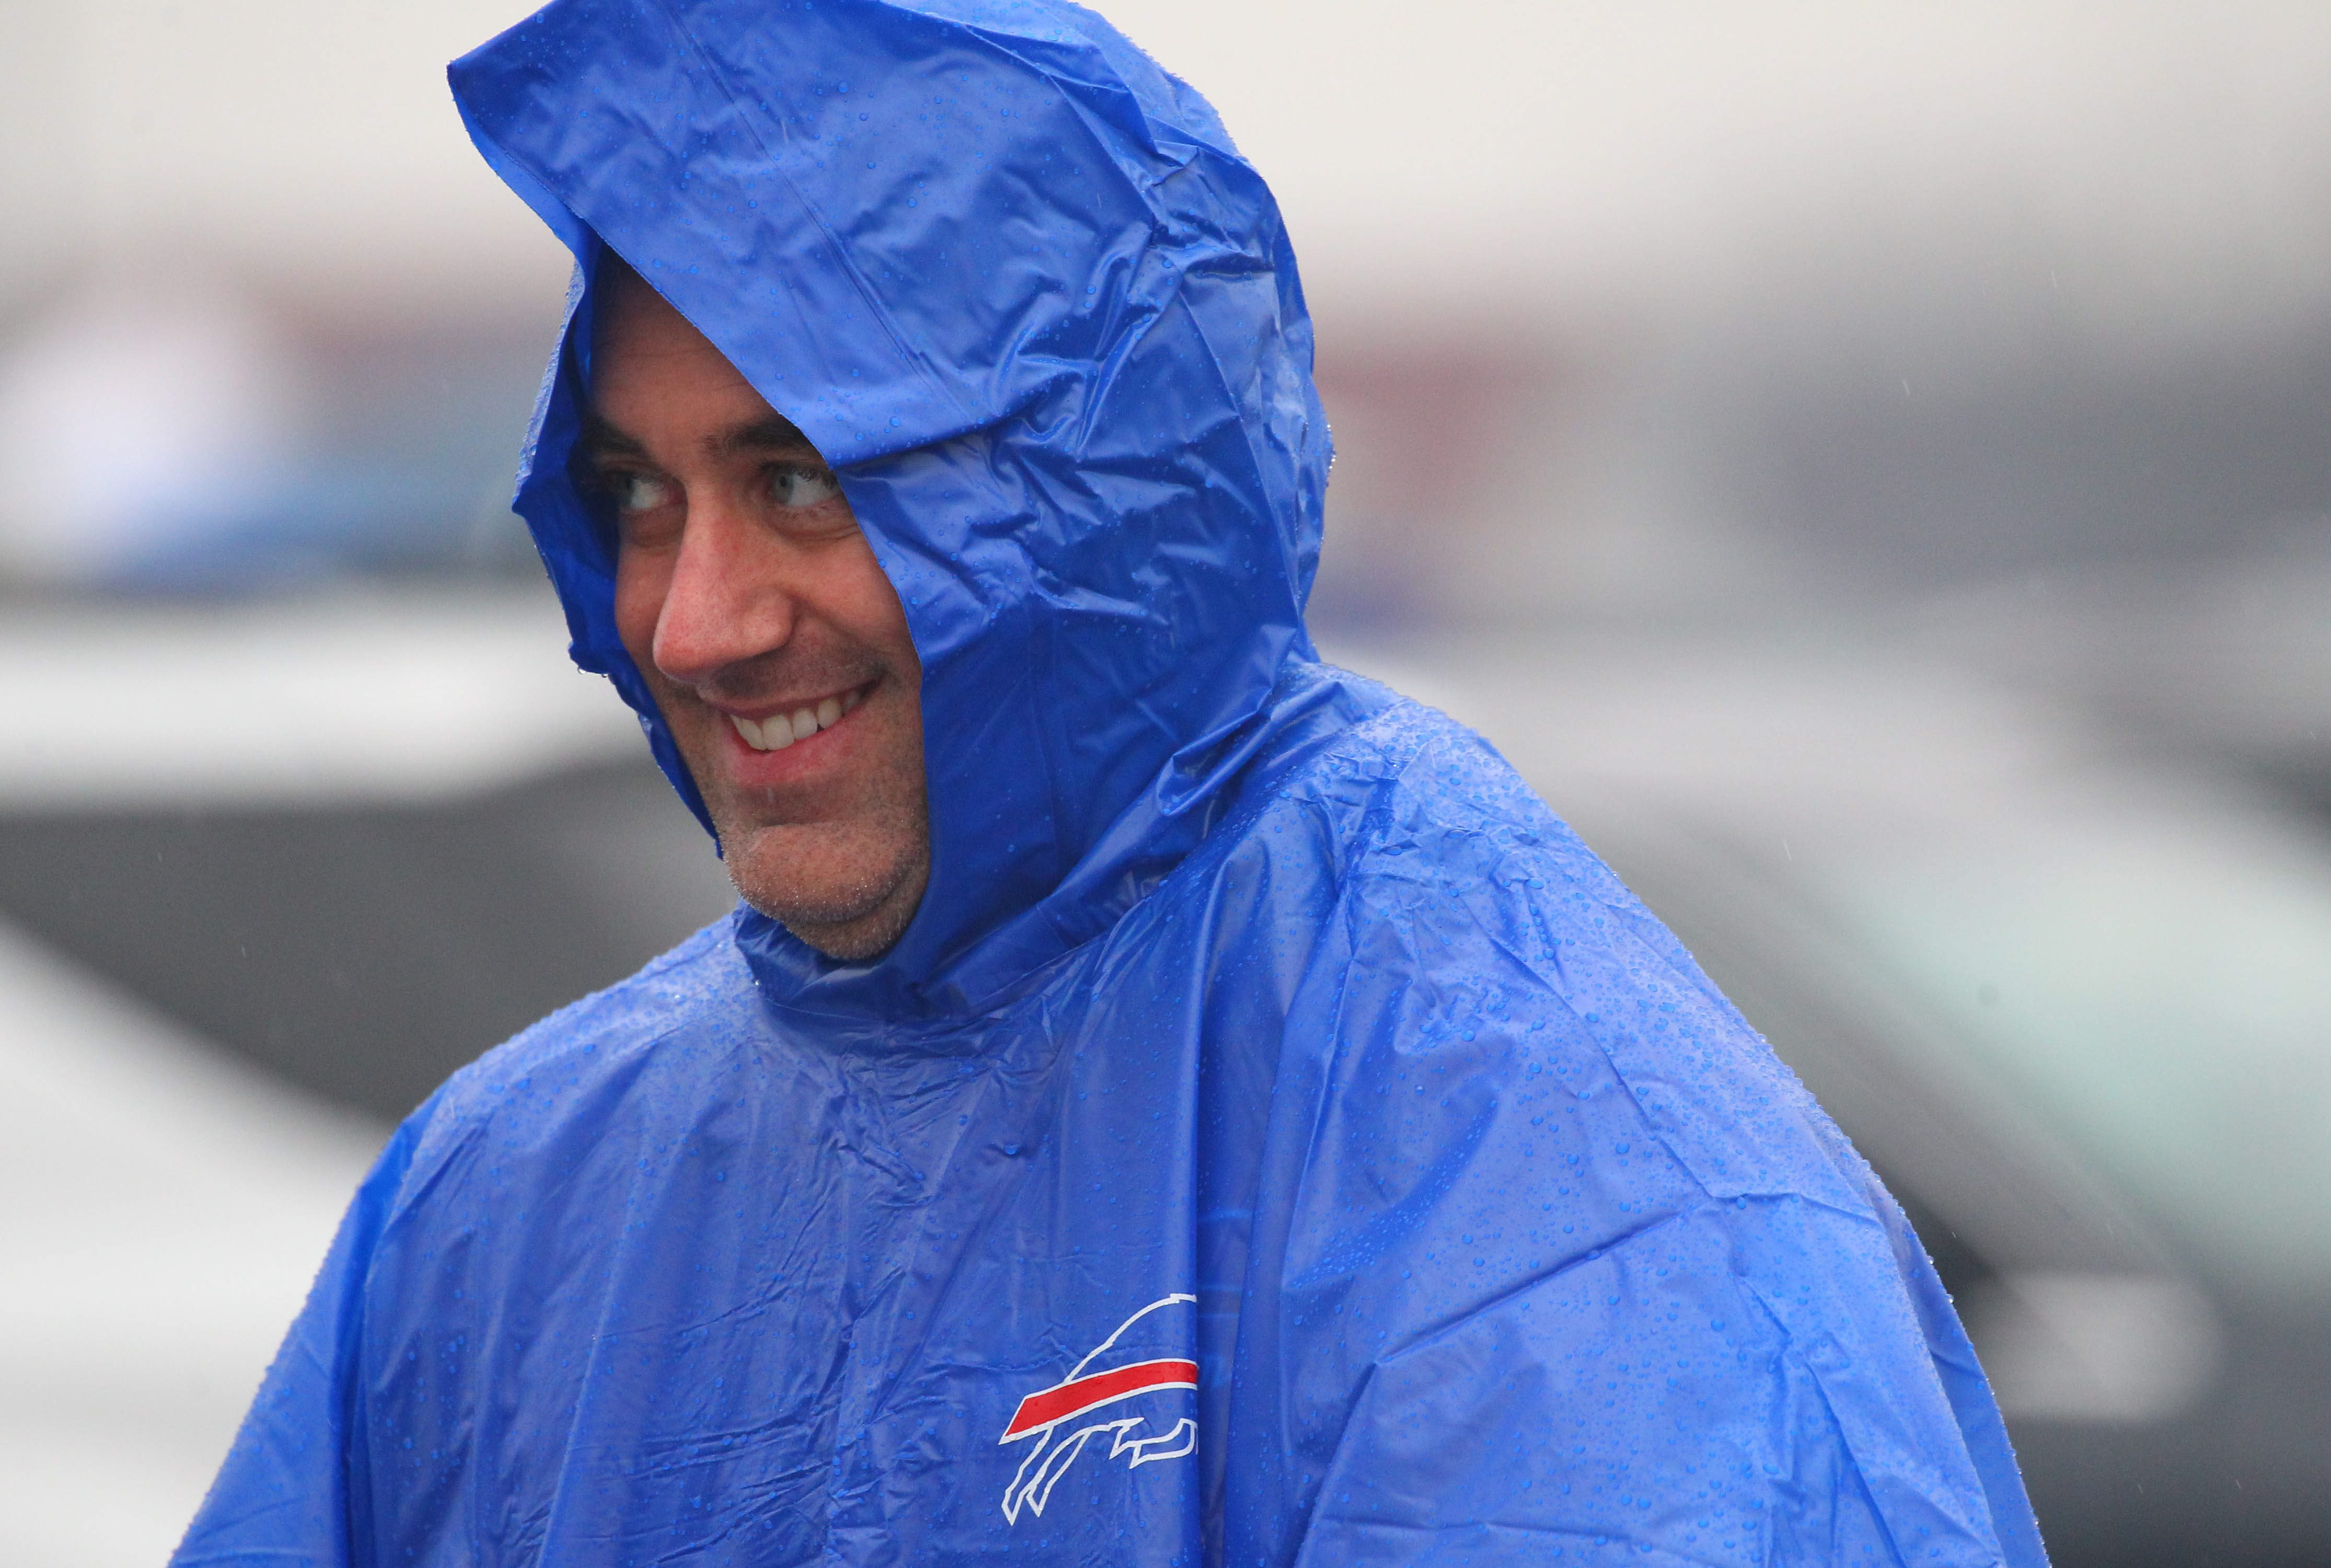 Stick a rain poncho in your pocket if you're headed out to Sunday's game, just in case. There's a 40 percent chance for showers, according to the National Weather Service forecast. (Mark Mulville/Buffalo News)